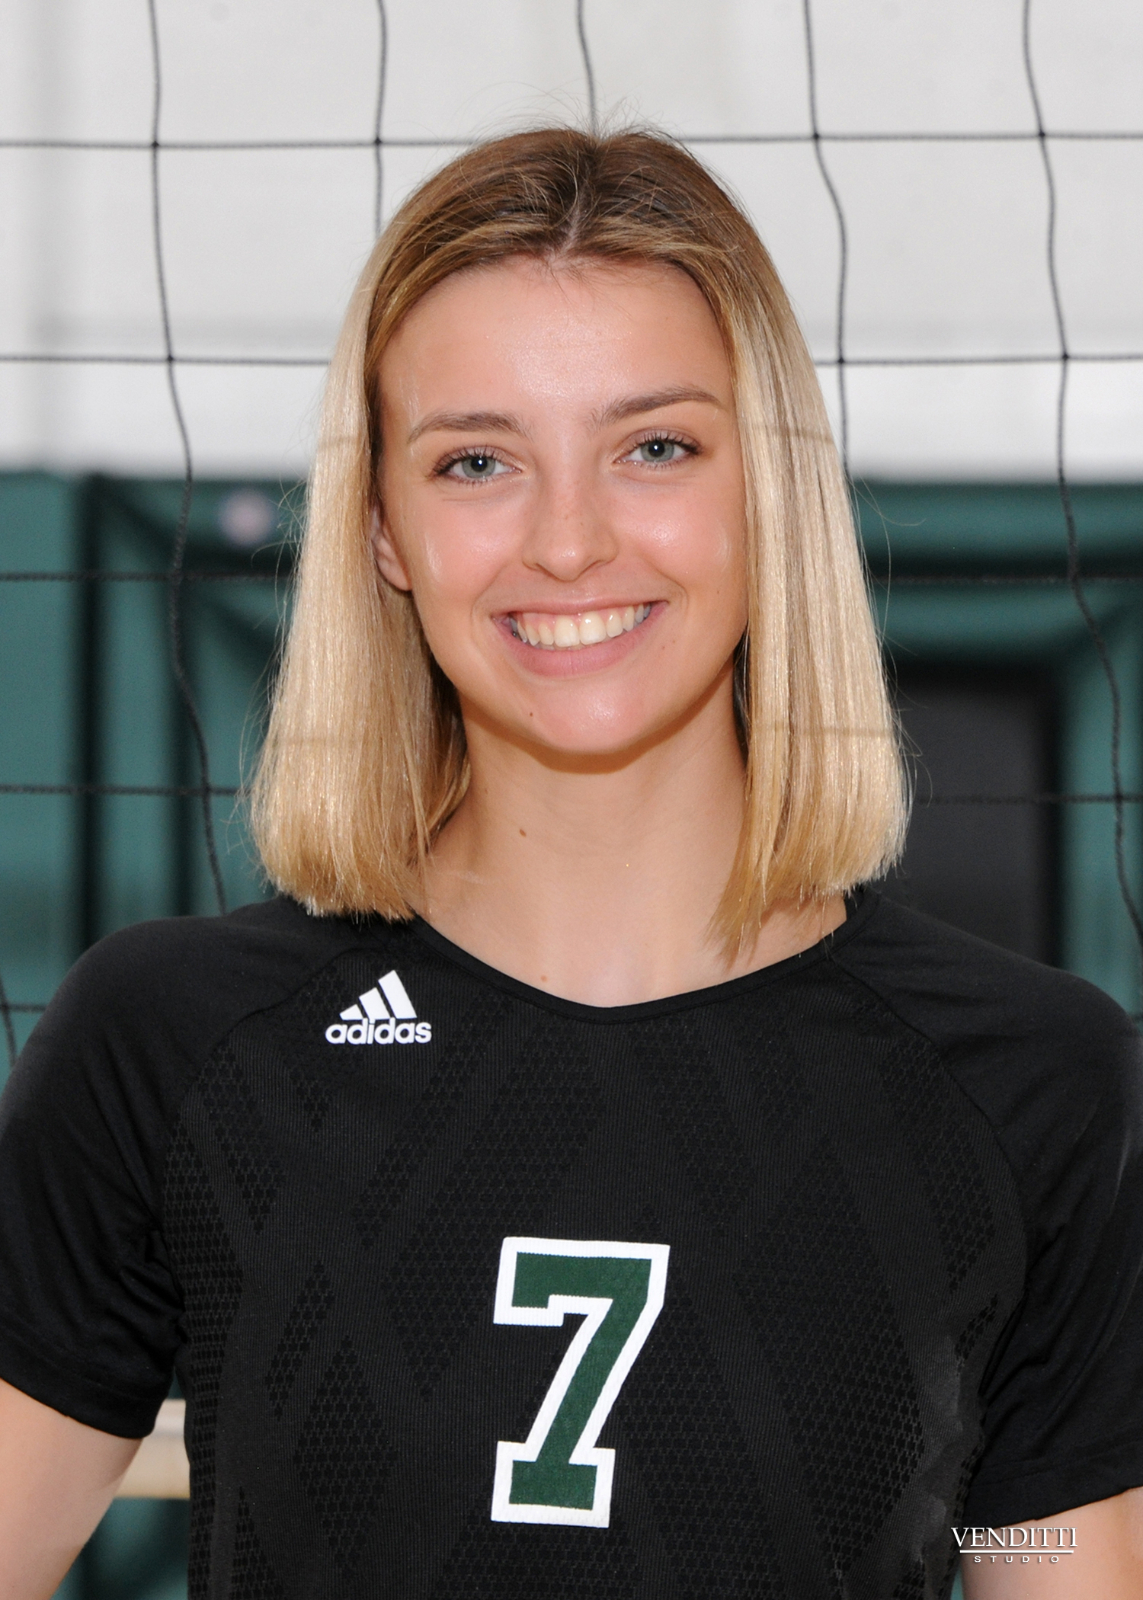 Knight named Athlete of the Week